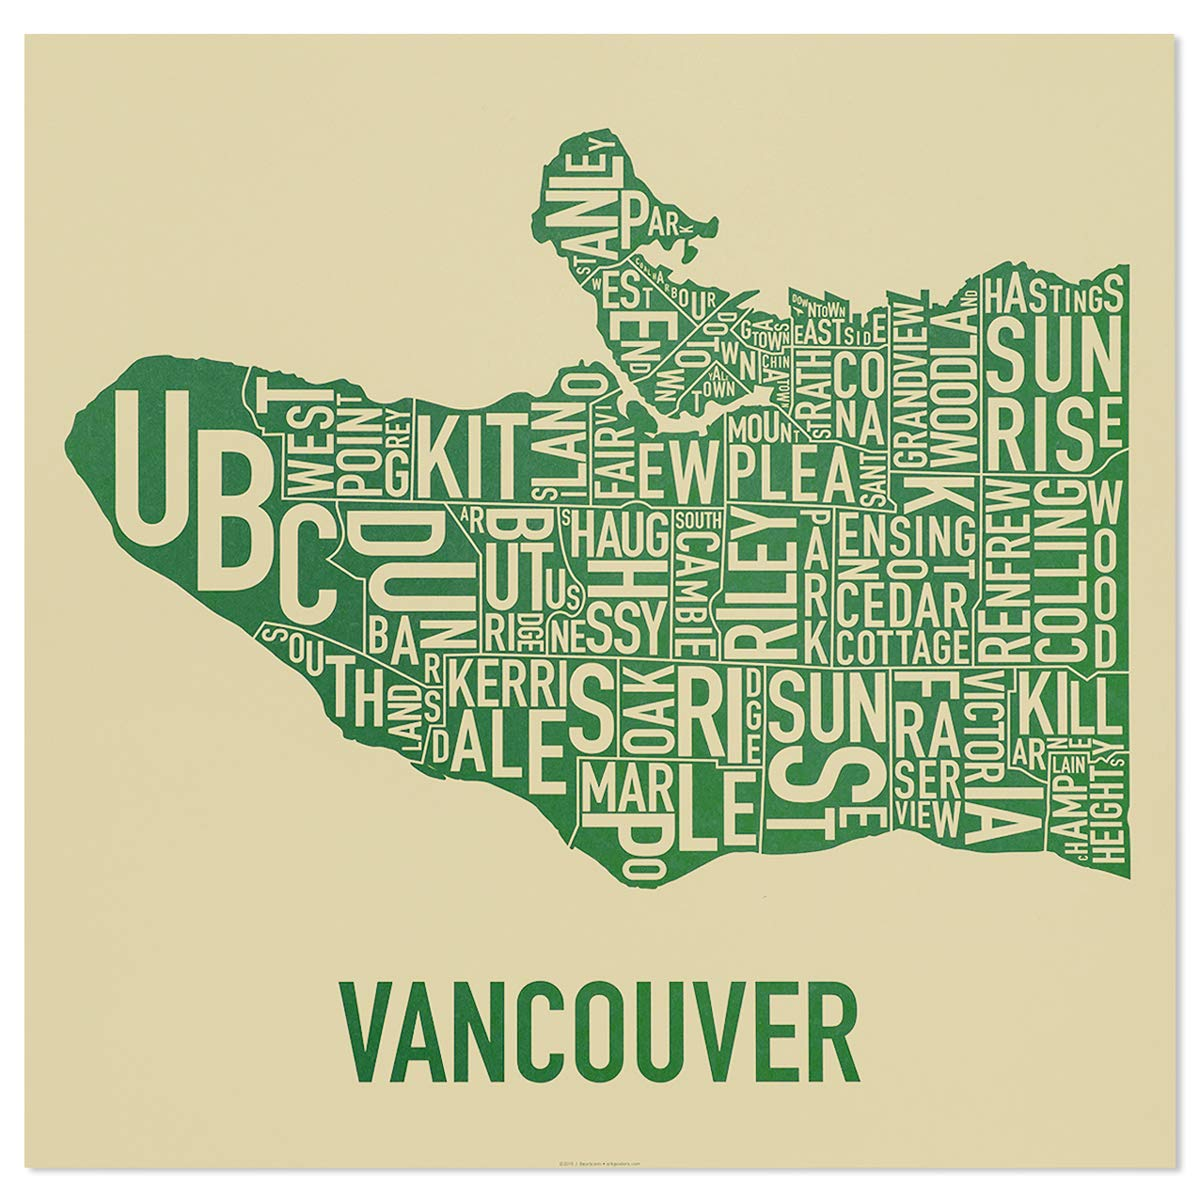 Amazon.com: Vancouver Barrios tipo Mapa cartel, Papel ...